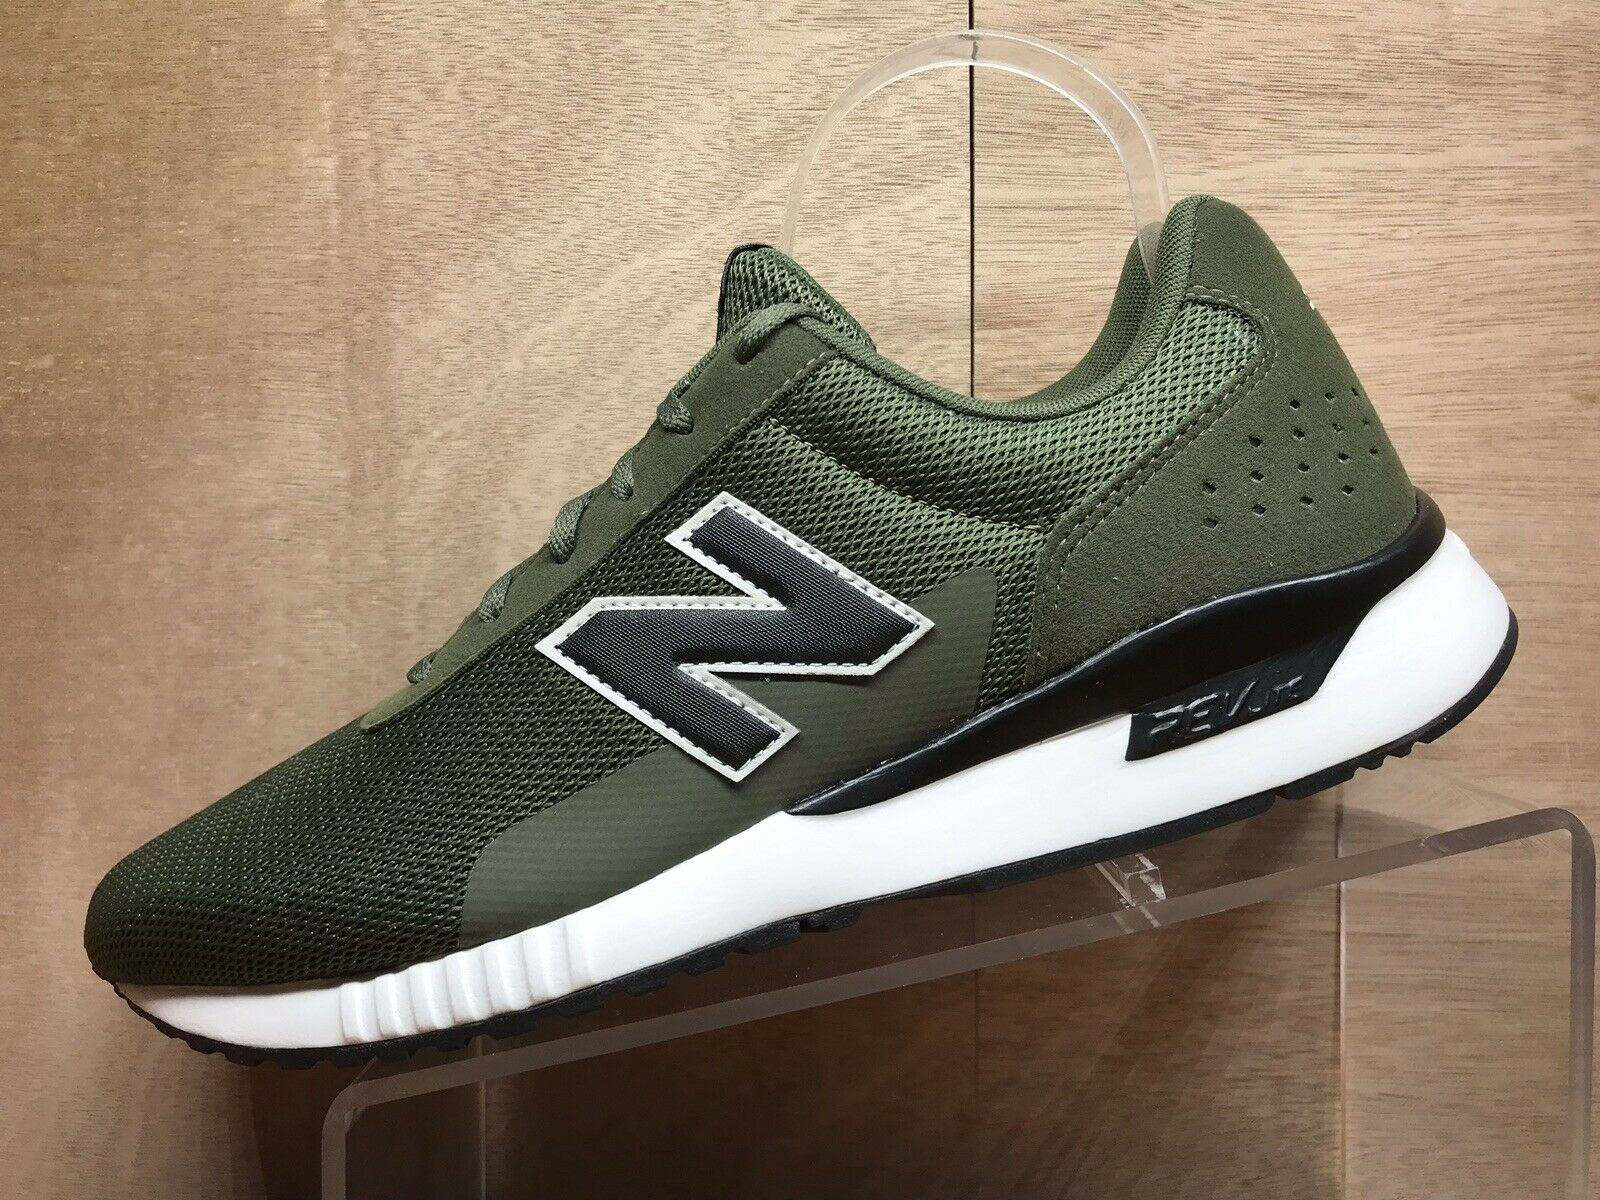 New Balance Men's 5v2 Sneaker Dark Cogreen Green 8.5 XW US